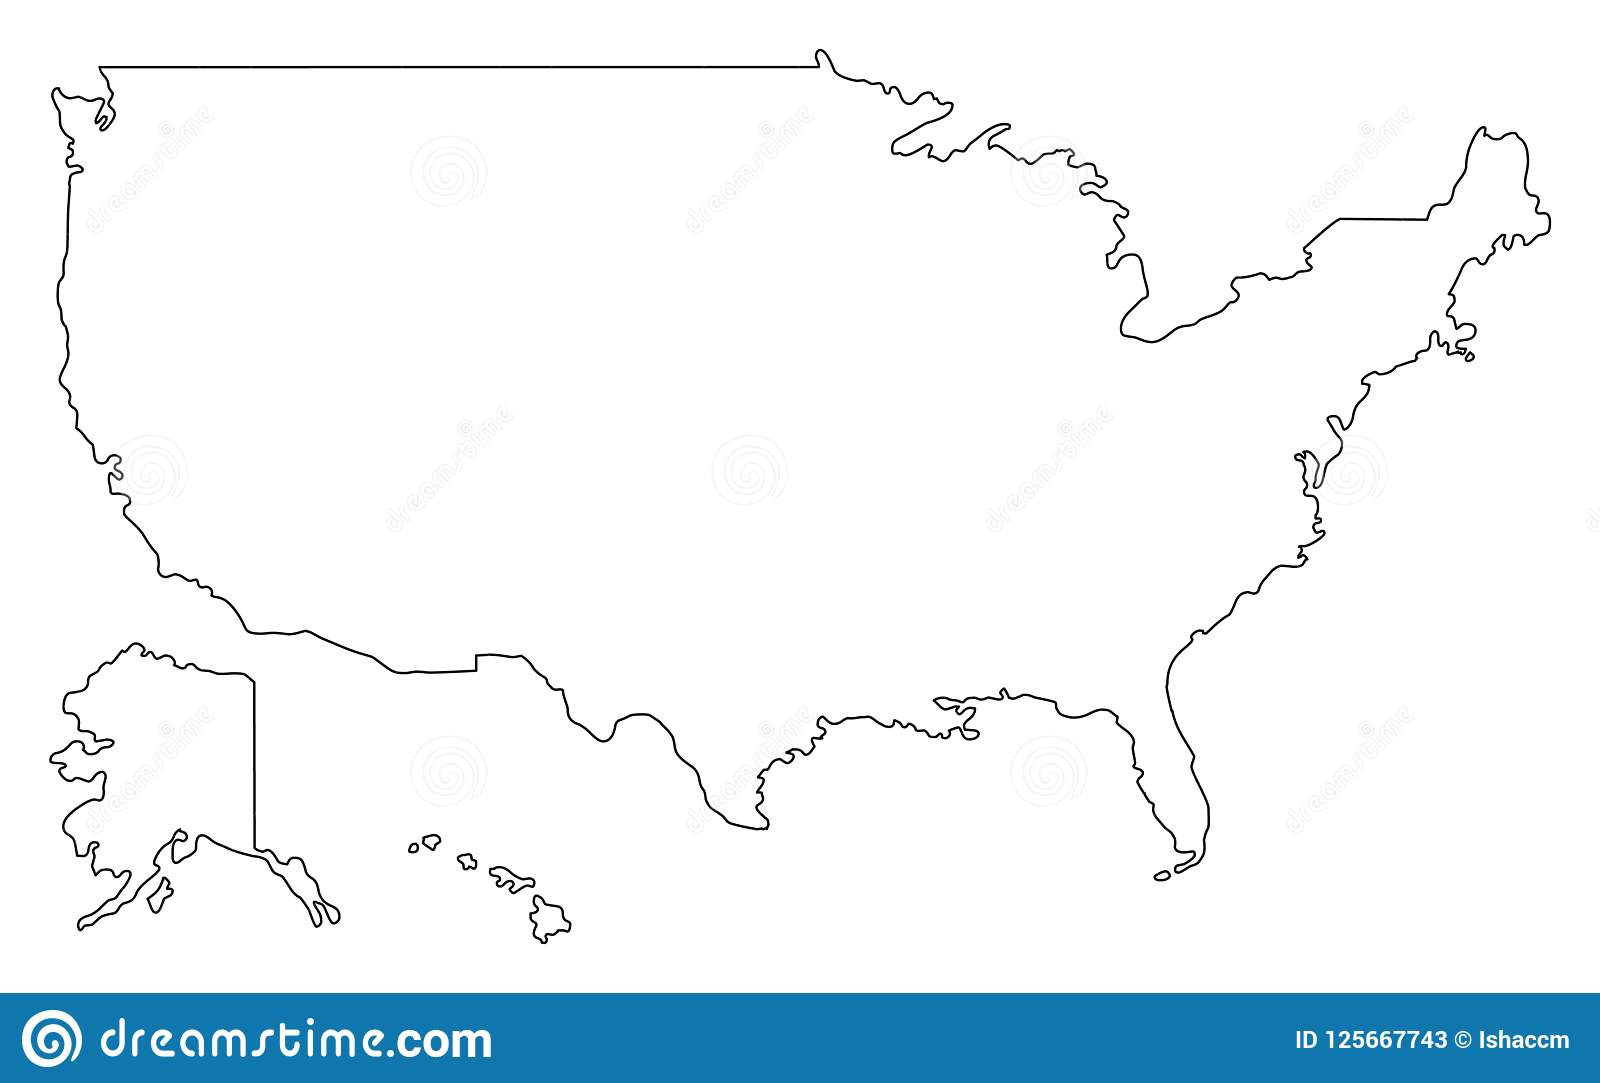 Map Of America Outline.United States Of America Map Outline Vector Illustartion Usa